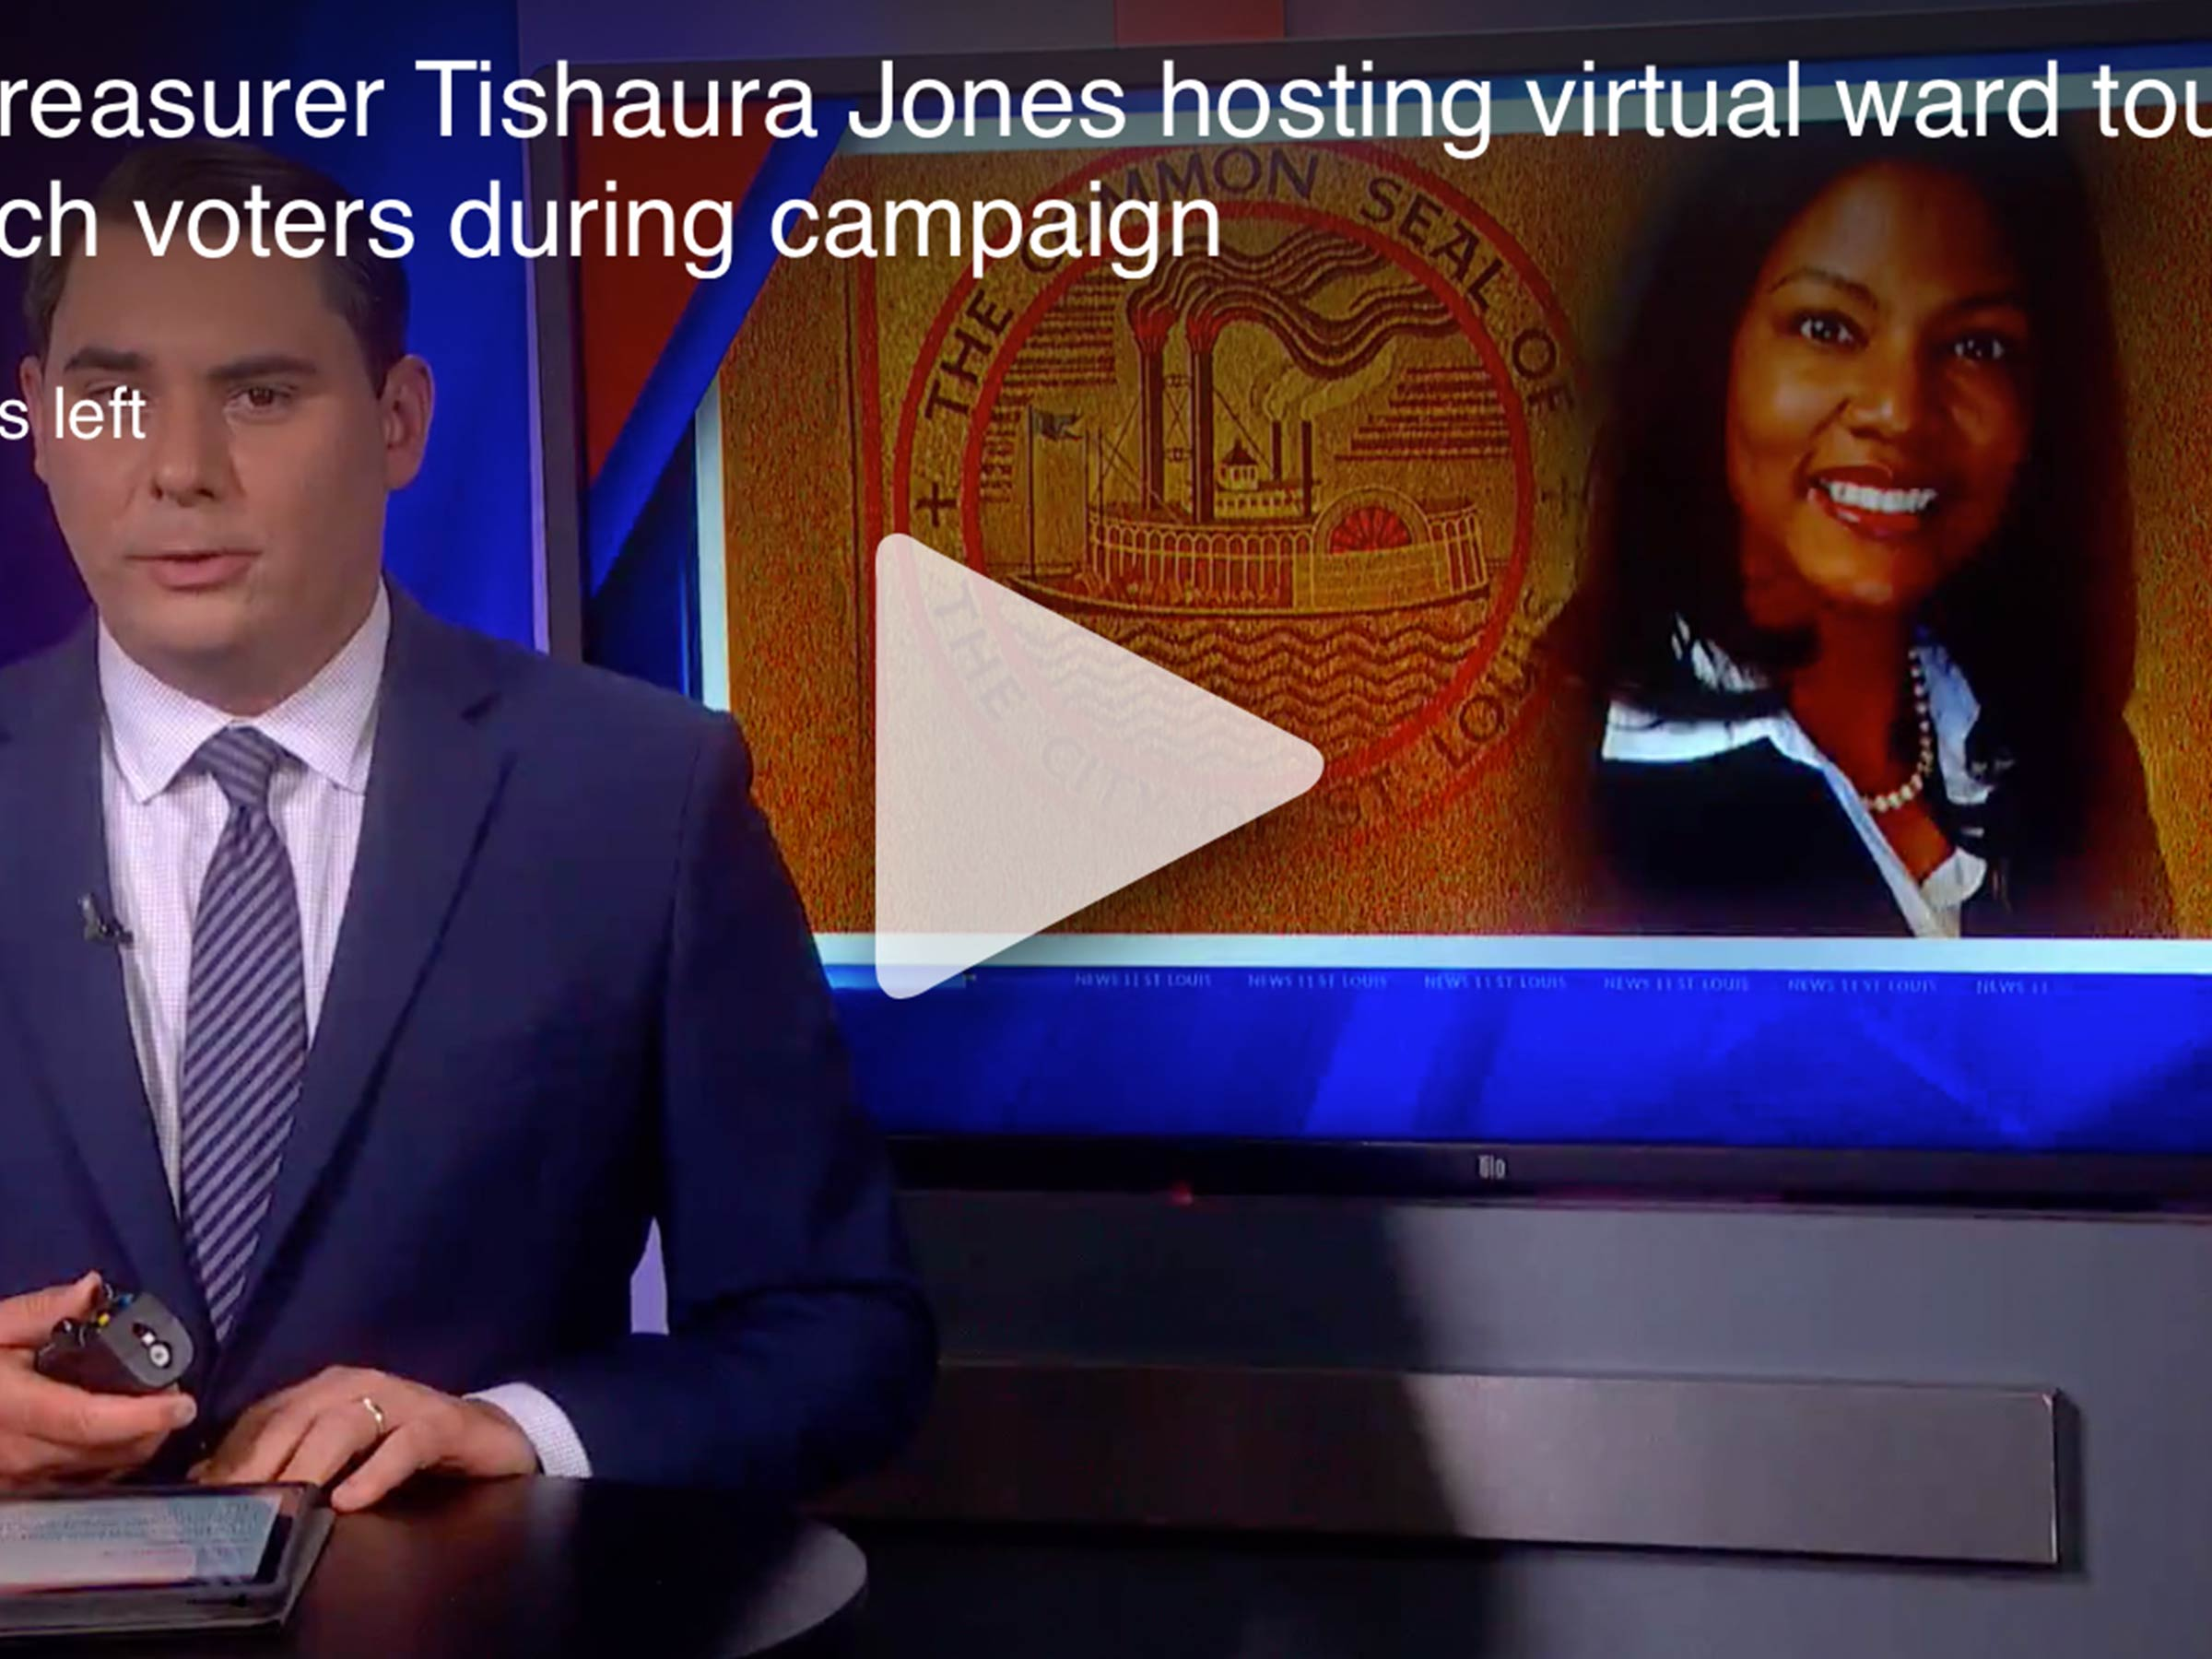 City Treasurer Tishaura Jones hosting virtual ward tours to reach voters during campaign